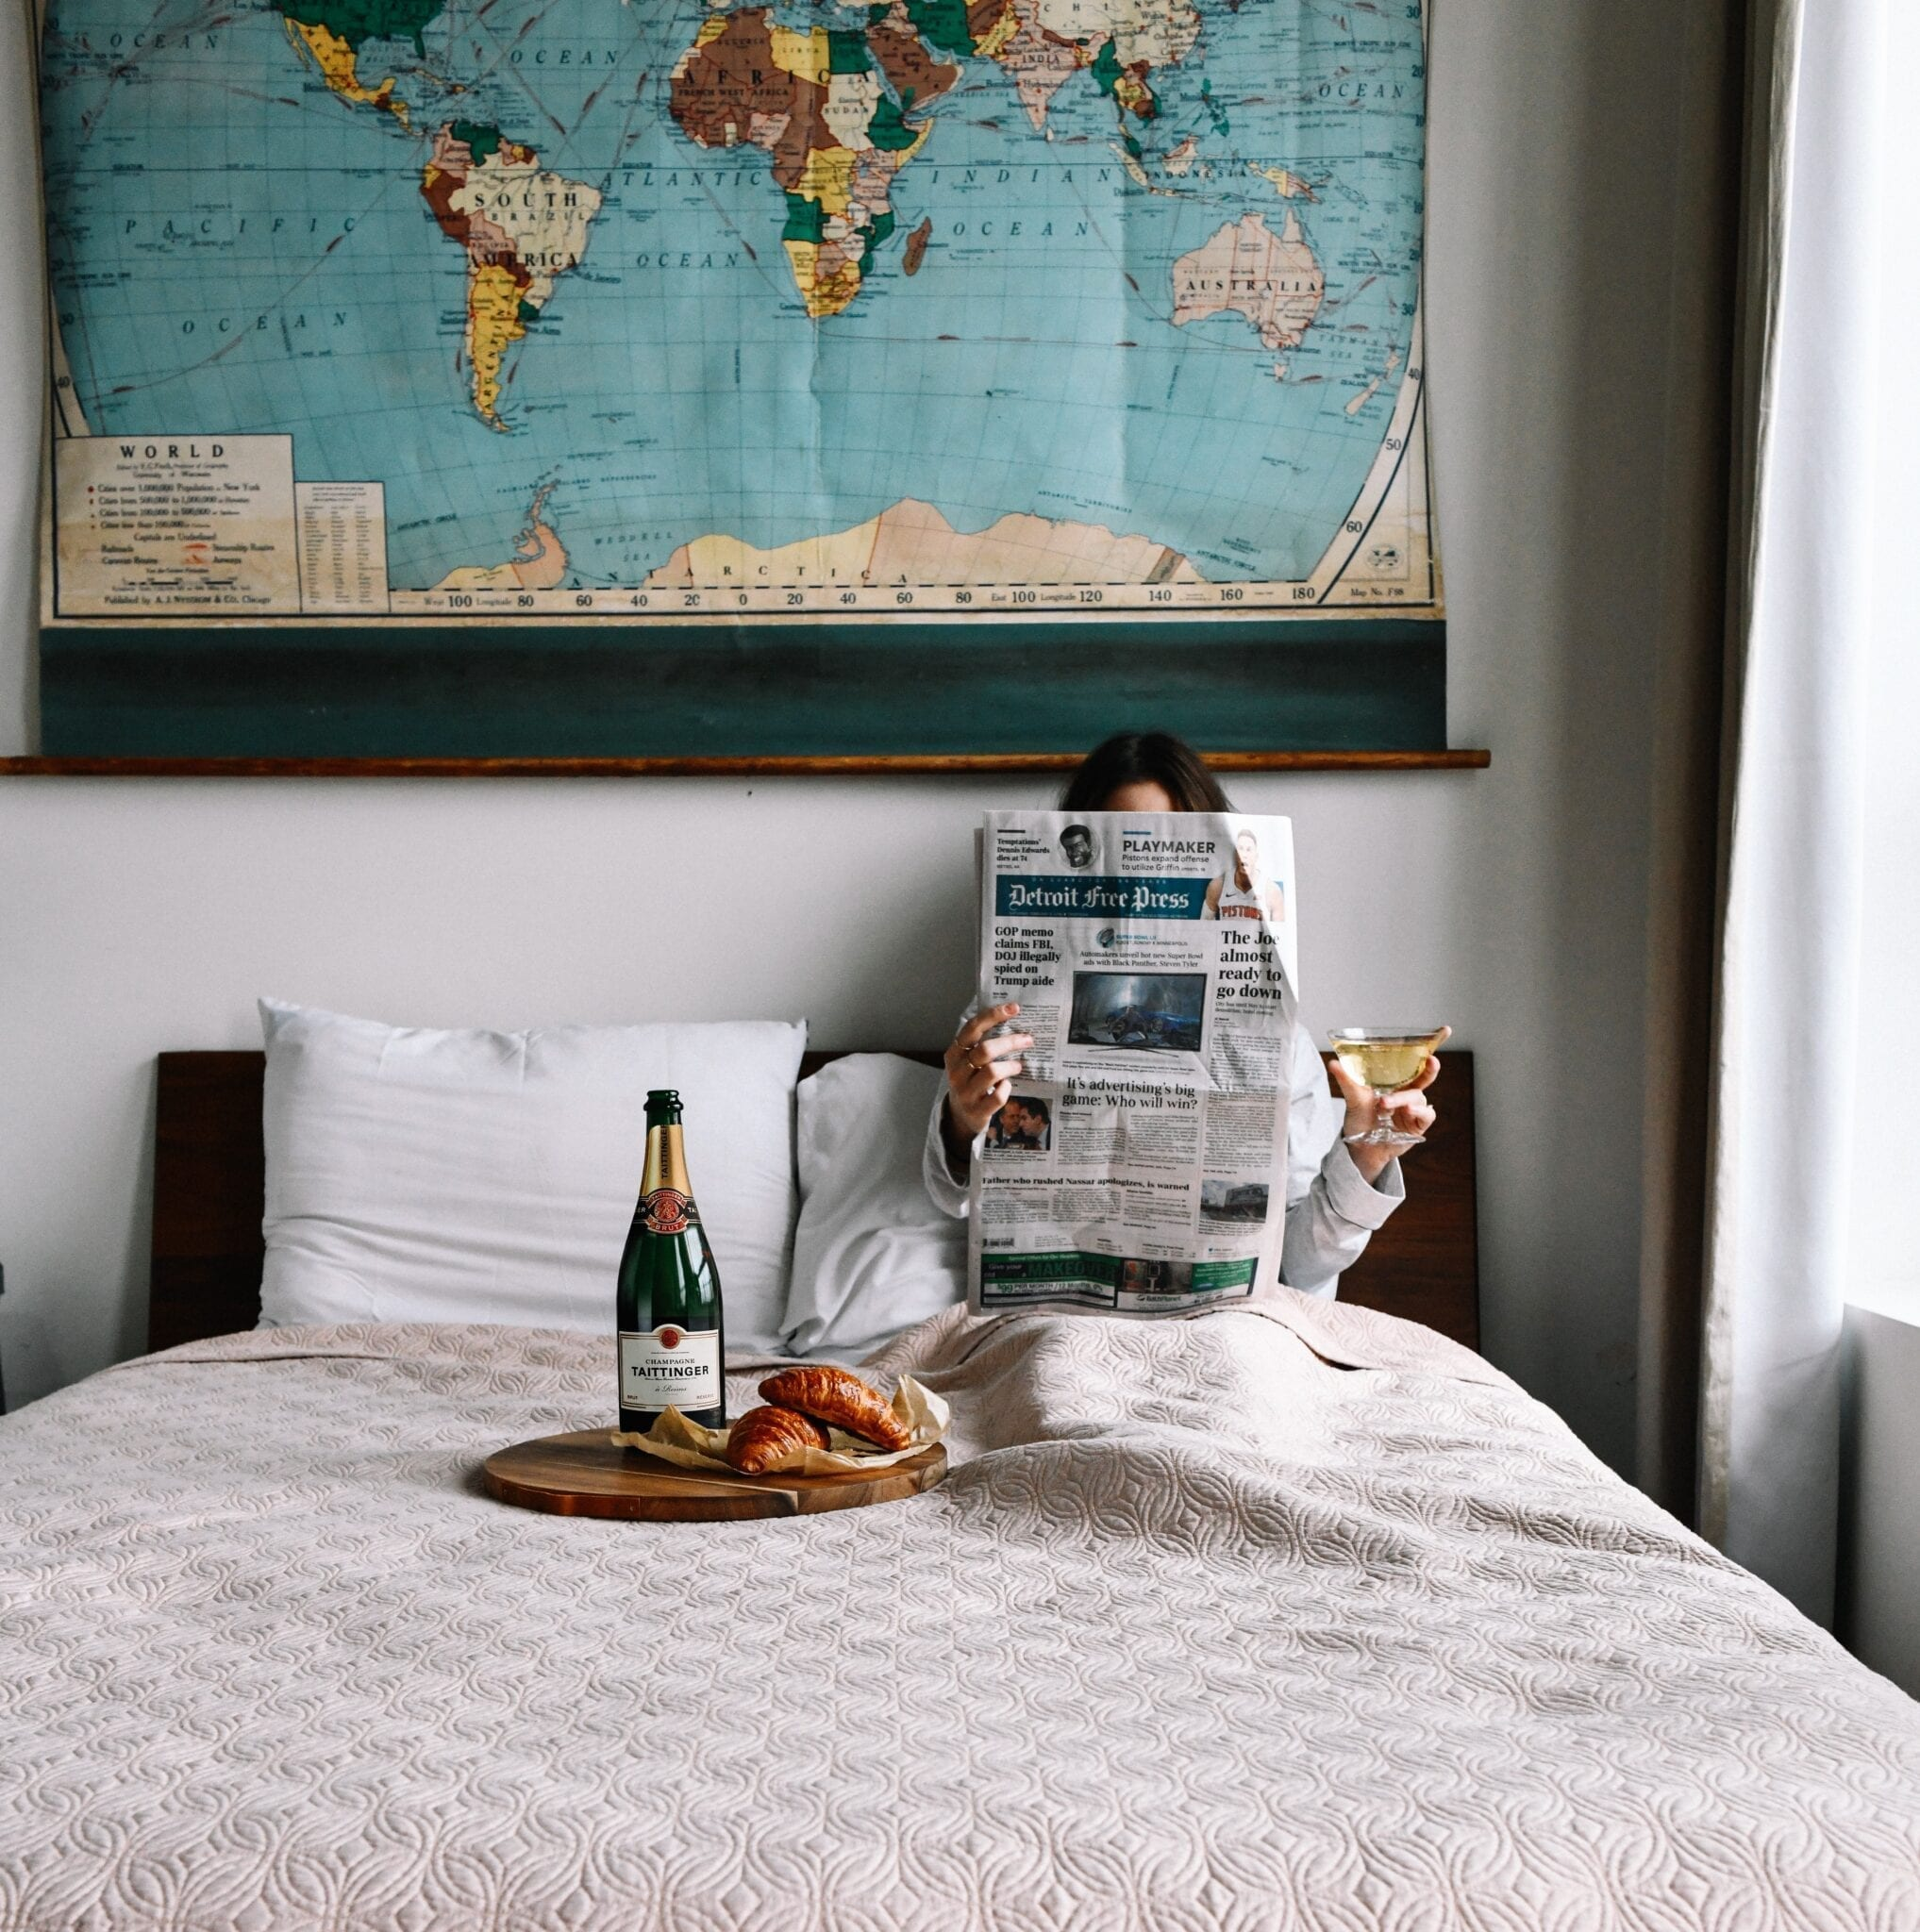 Reading in bed with wine and travel map poster